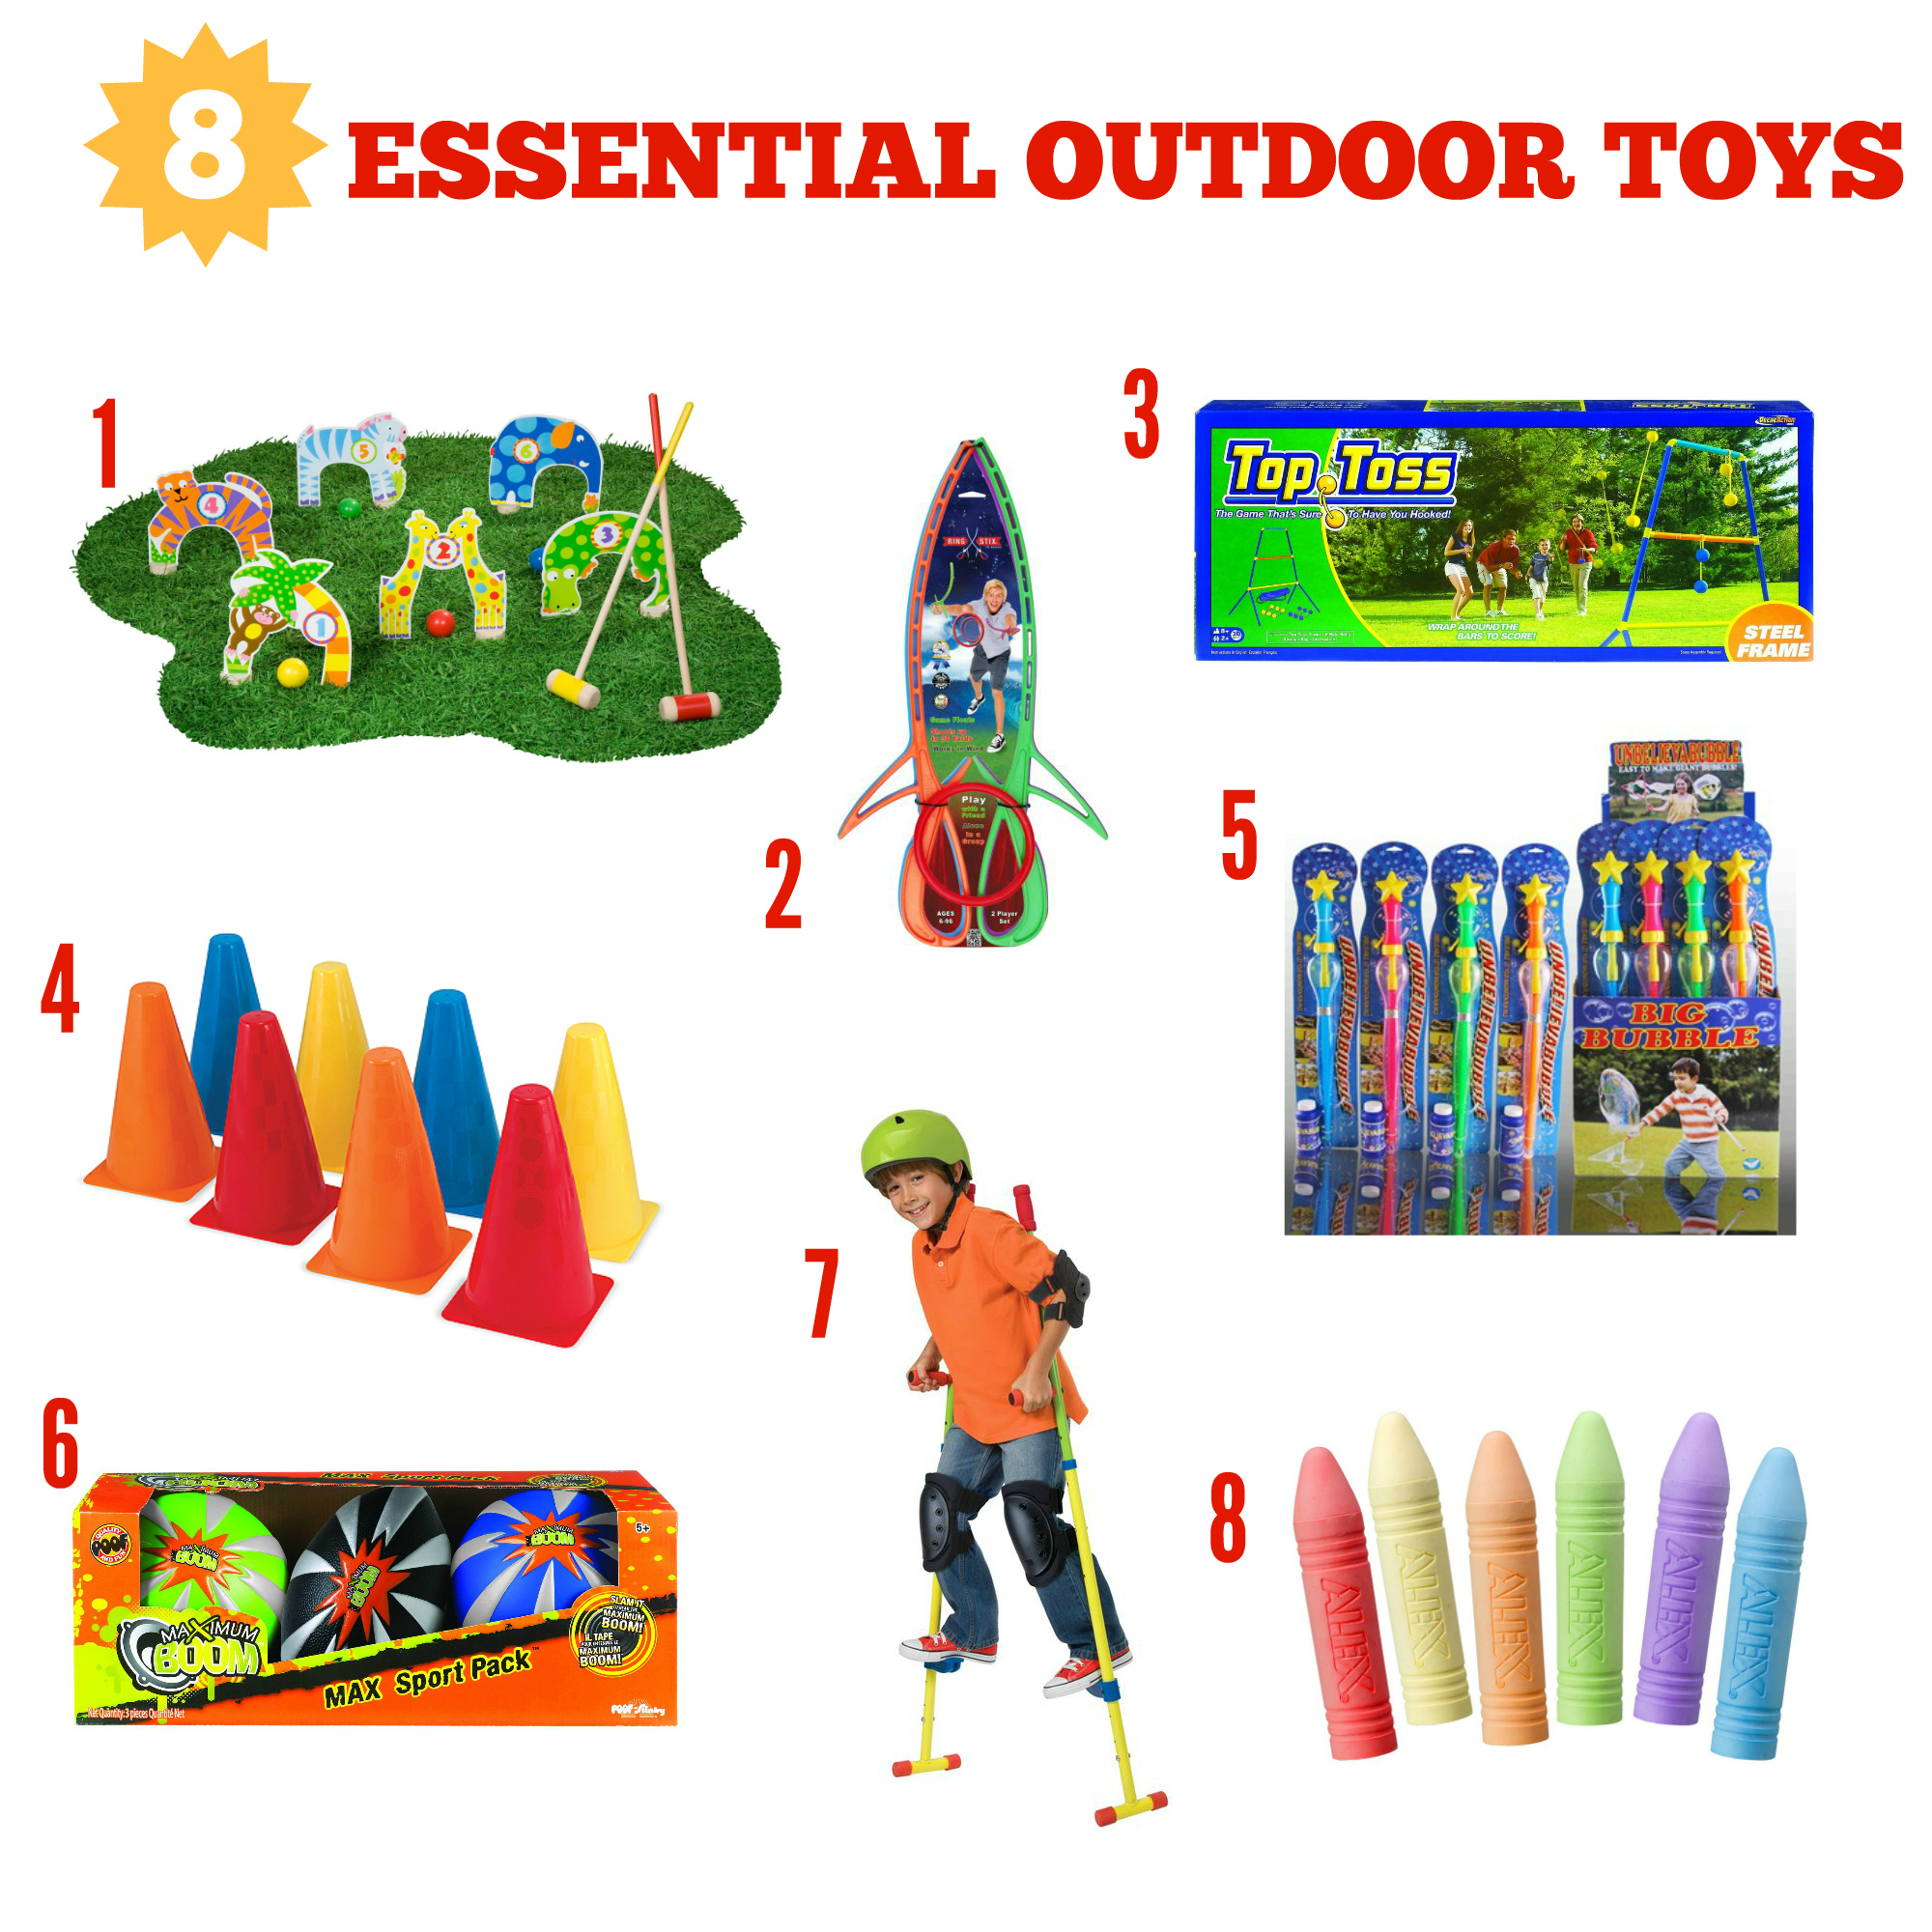 Buitenspeelgoed Schoolplein 8 Essential Outdoor Toys The Toy Insider